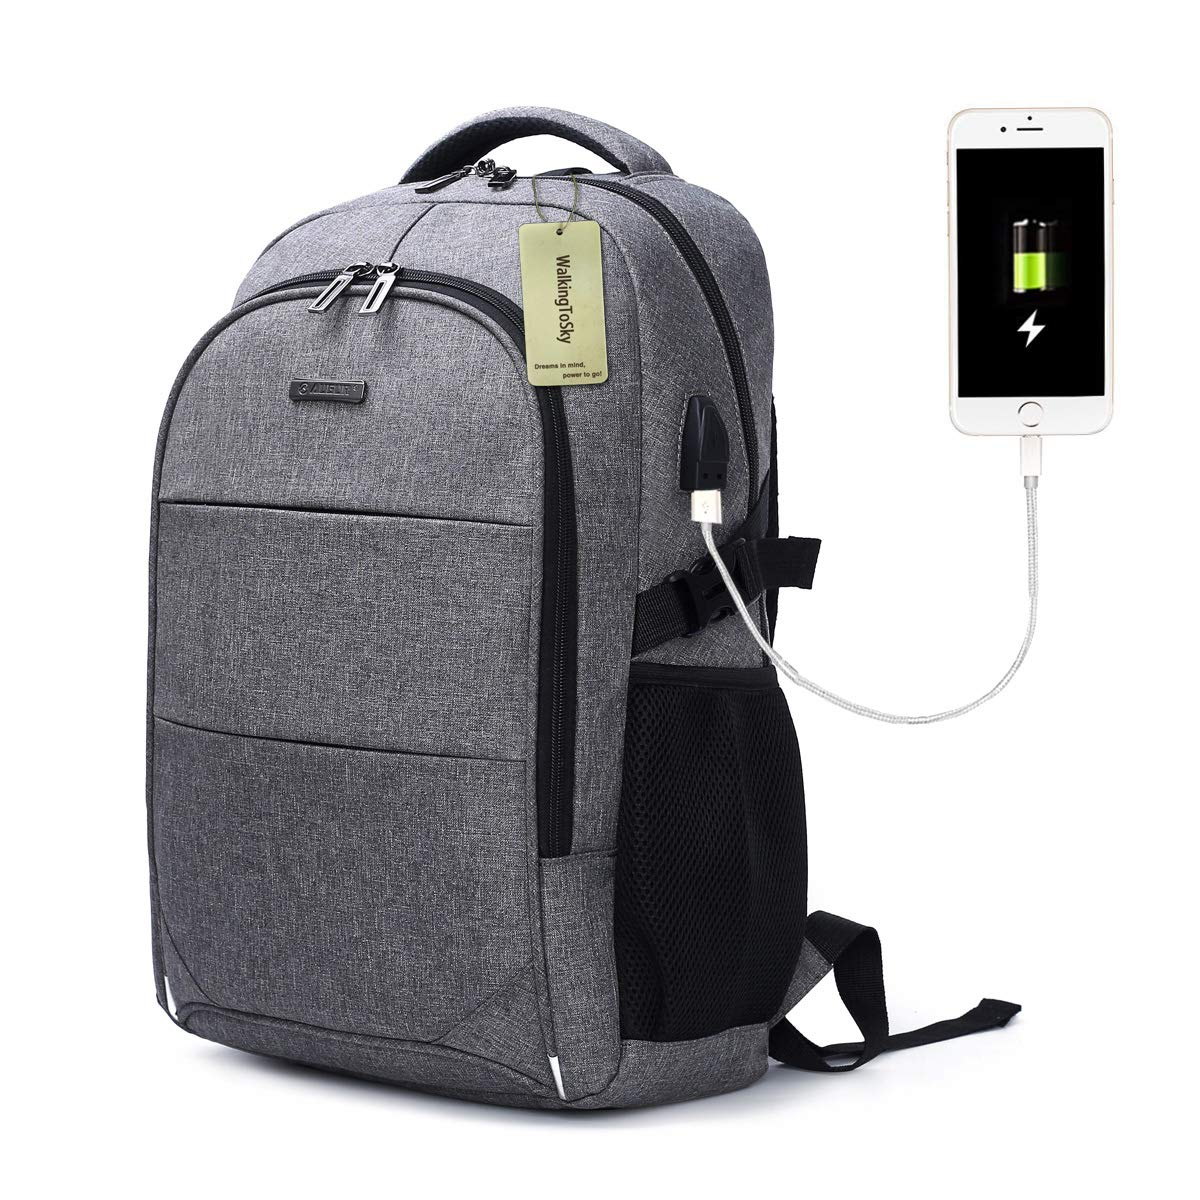 Laptop Backpack with USB Charging Port Travel Computer Bag for Women and Men Anti Theft Water Resistant College School Bookbag Slim Business Backpack Fits 15.6 inch Laptop and Notebook WalkingToSky WS-9055GR-CA